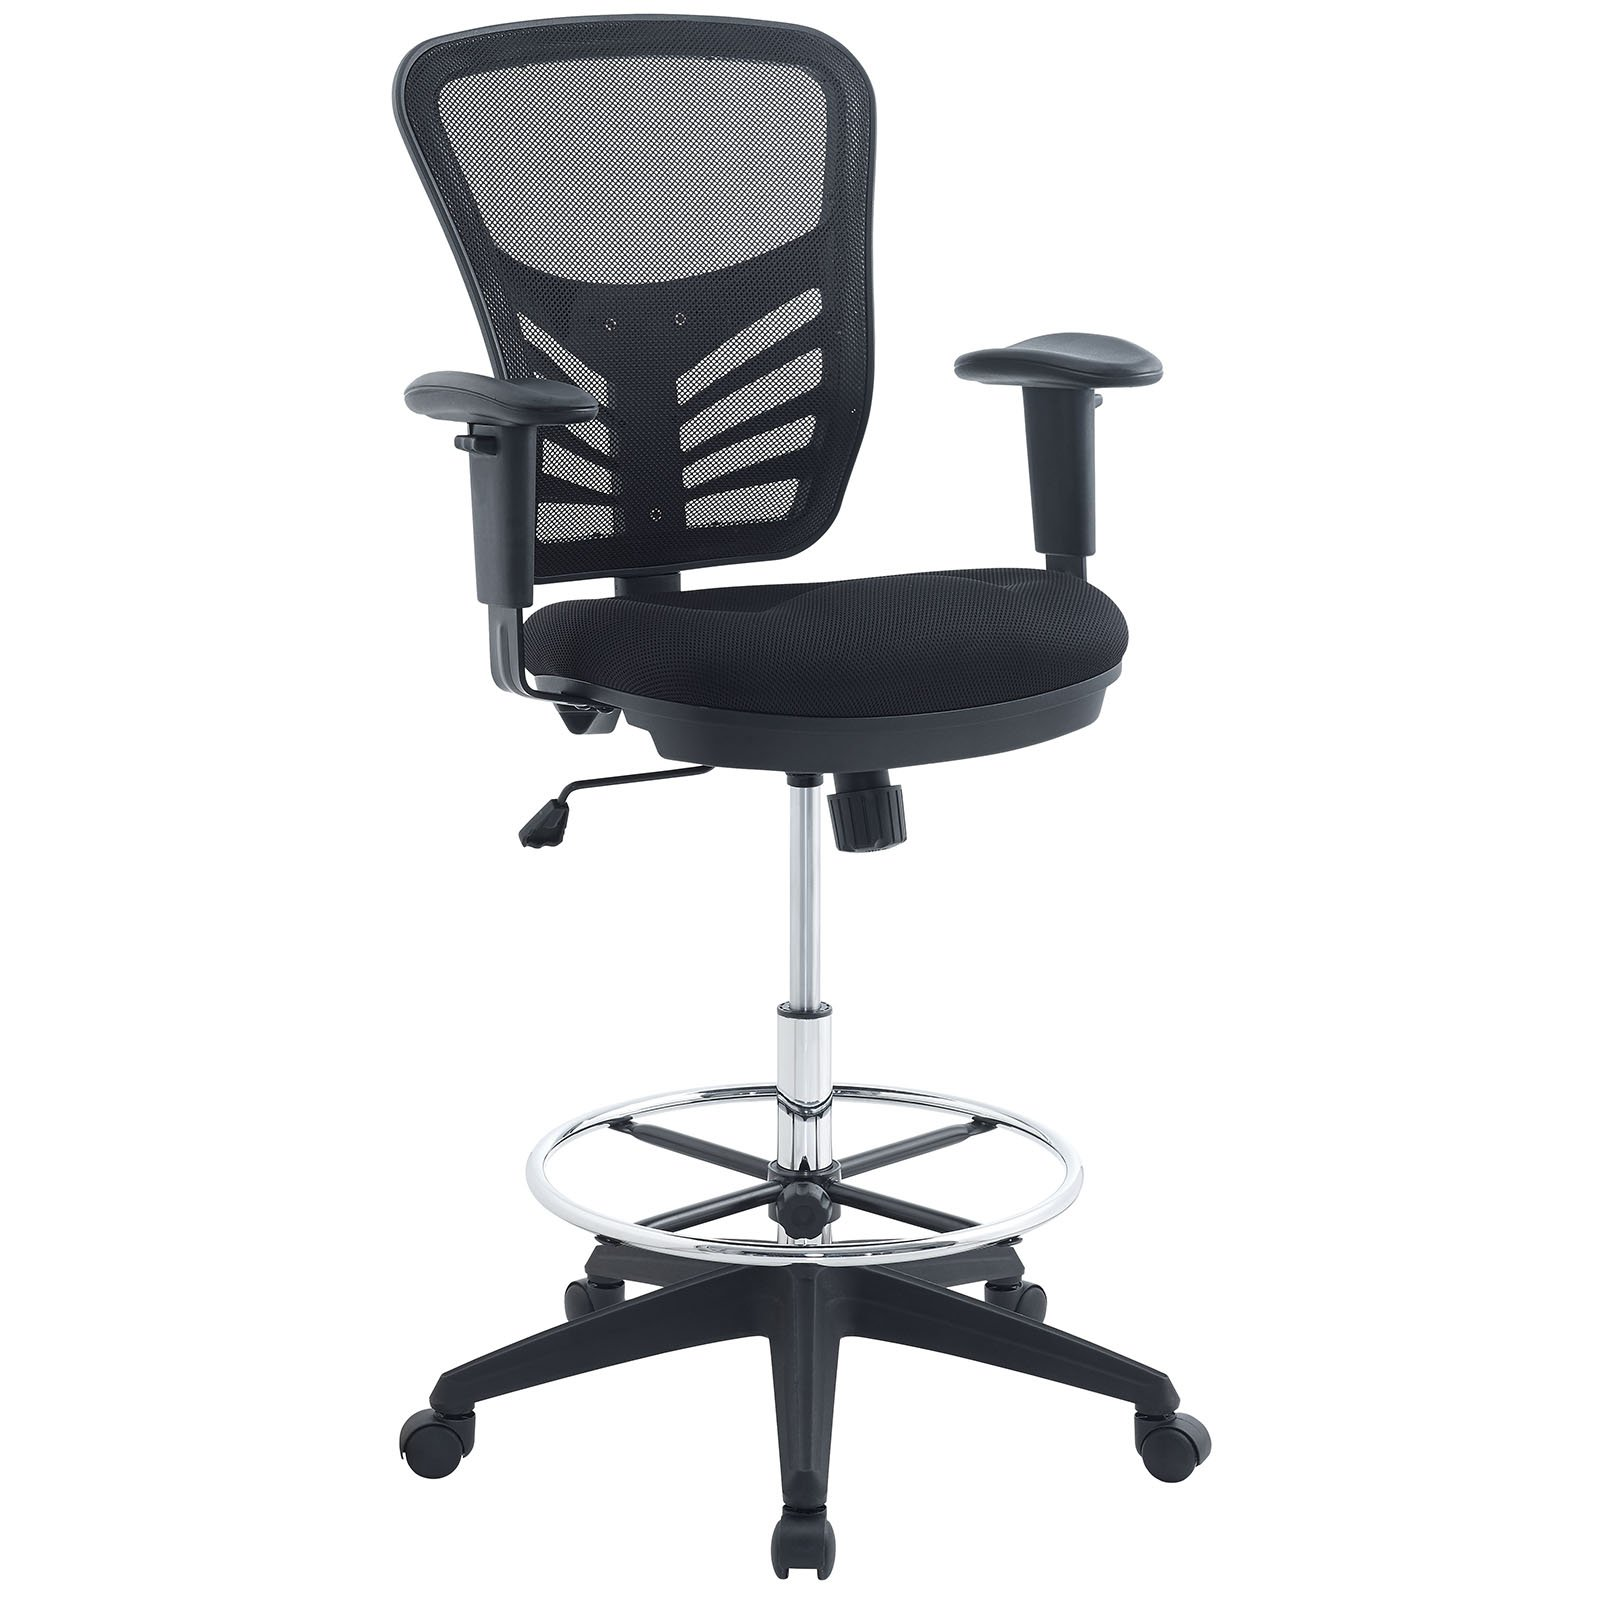 Modway Articulate Drafting Chair in Black - Reception Desk Chair - Tall Office Chair for Adjustable Standing Desks - Drafting Table Chair